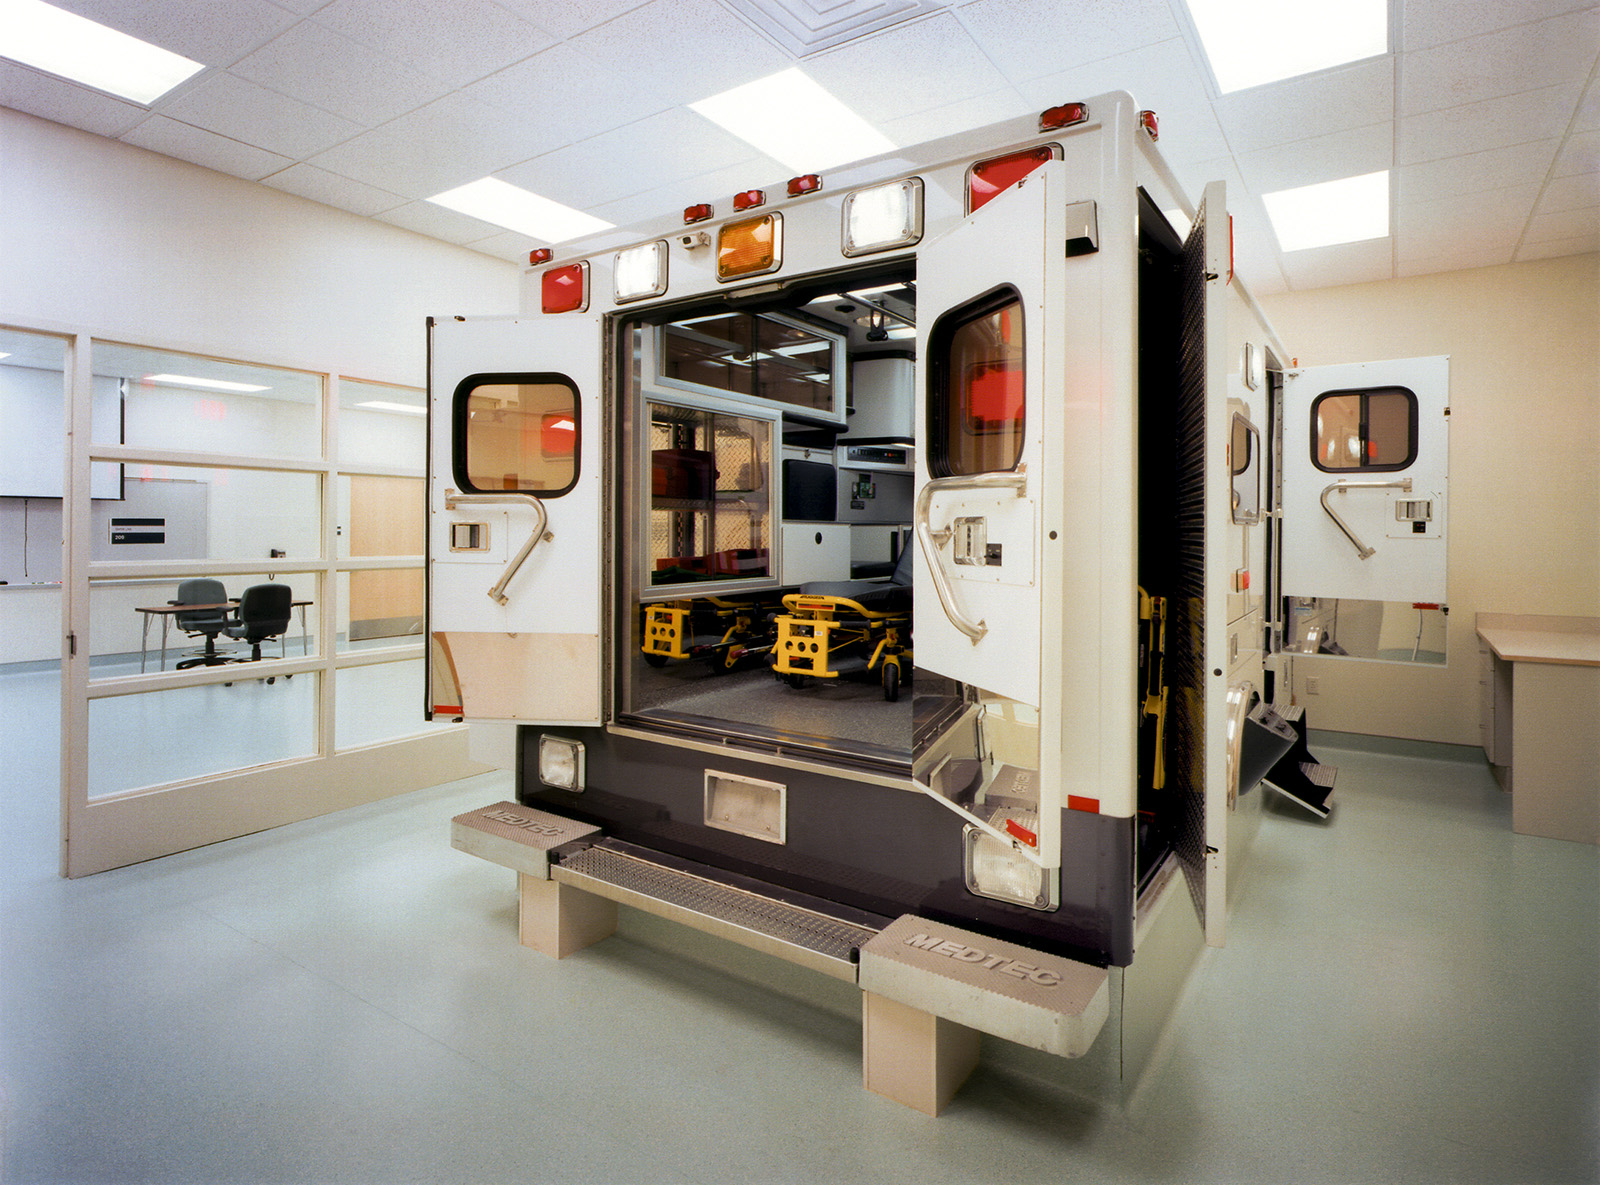 lcc-health-and-human-services-ambulance